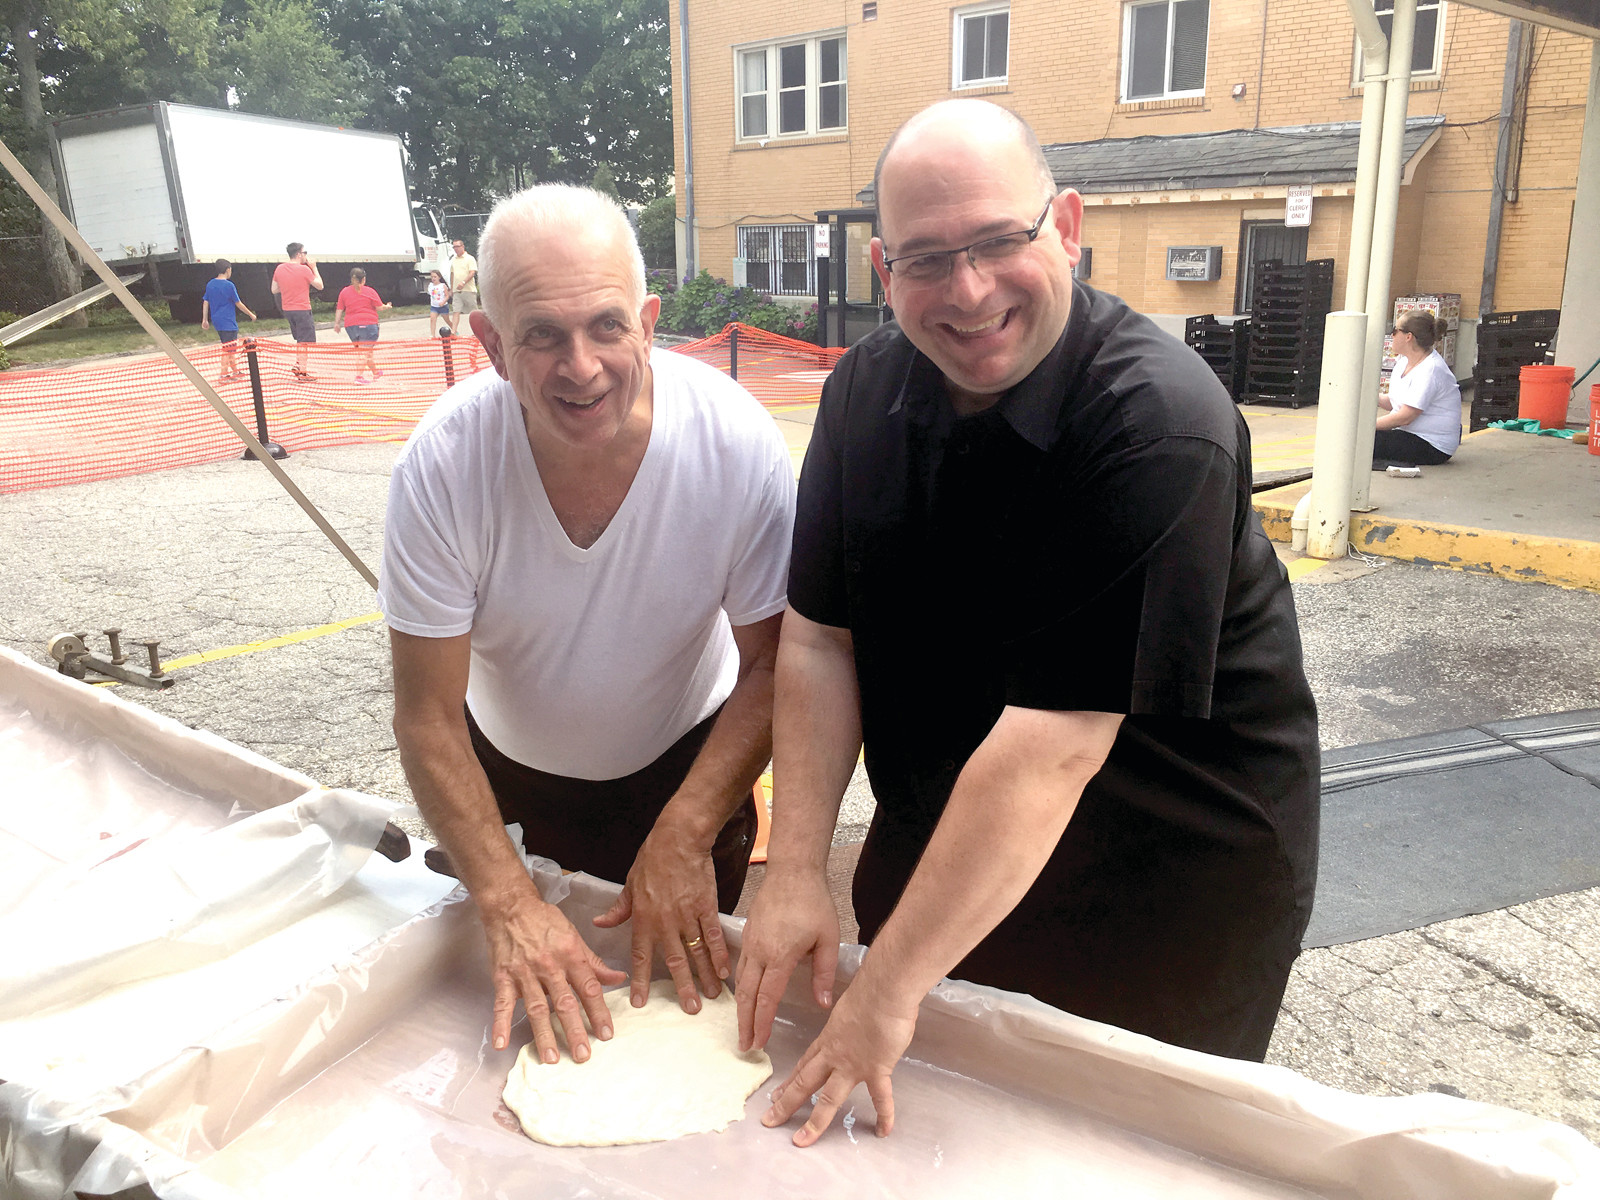 STICKY SITUATION: Don DePetrillo donates much to the Johnston community. He's pictured here with Father Carusi, the Pastor at St. Rocco's School, kneading some of the more than 1,000 pounds of dough he donated to the event. Parishioners thank DePetrillo for donating his time and money to the church and community.